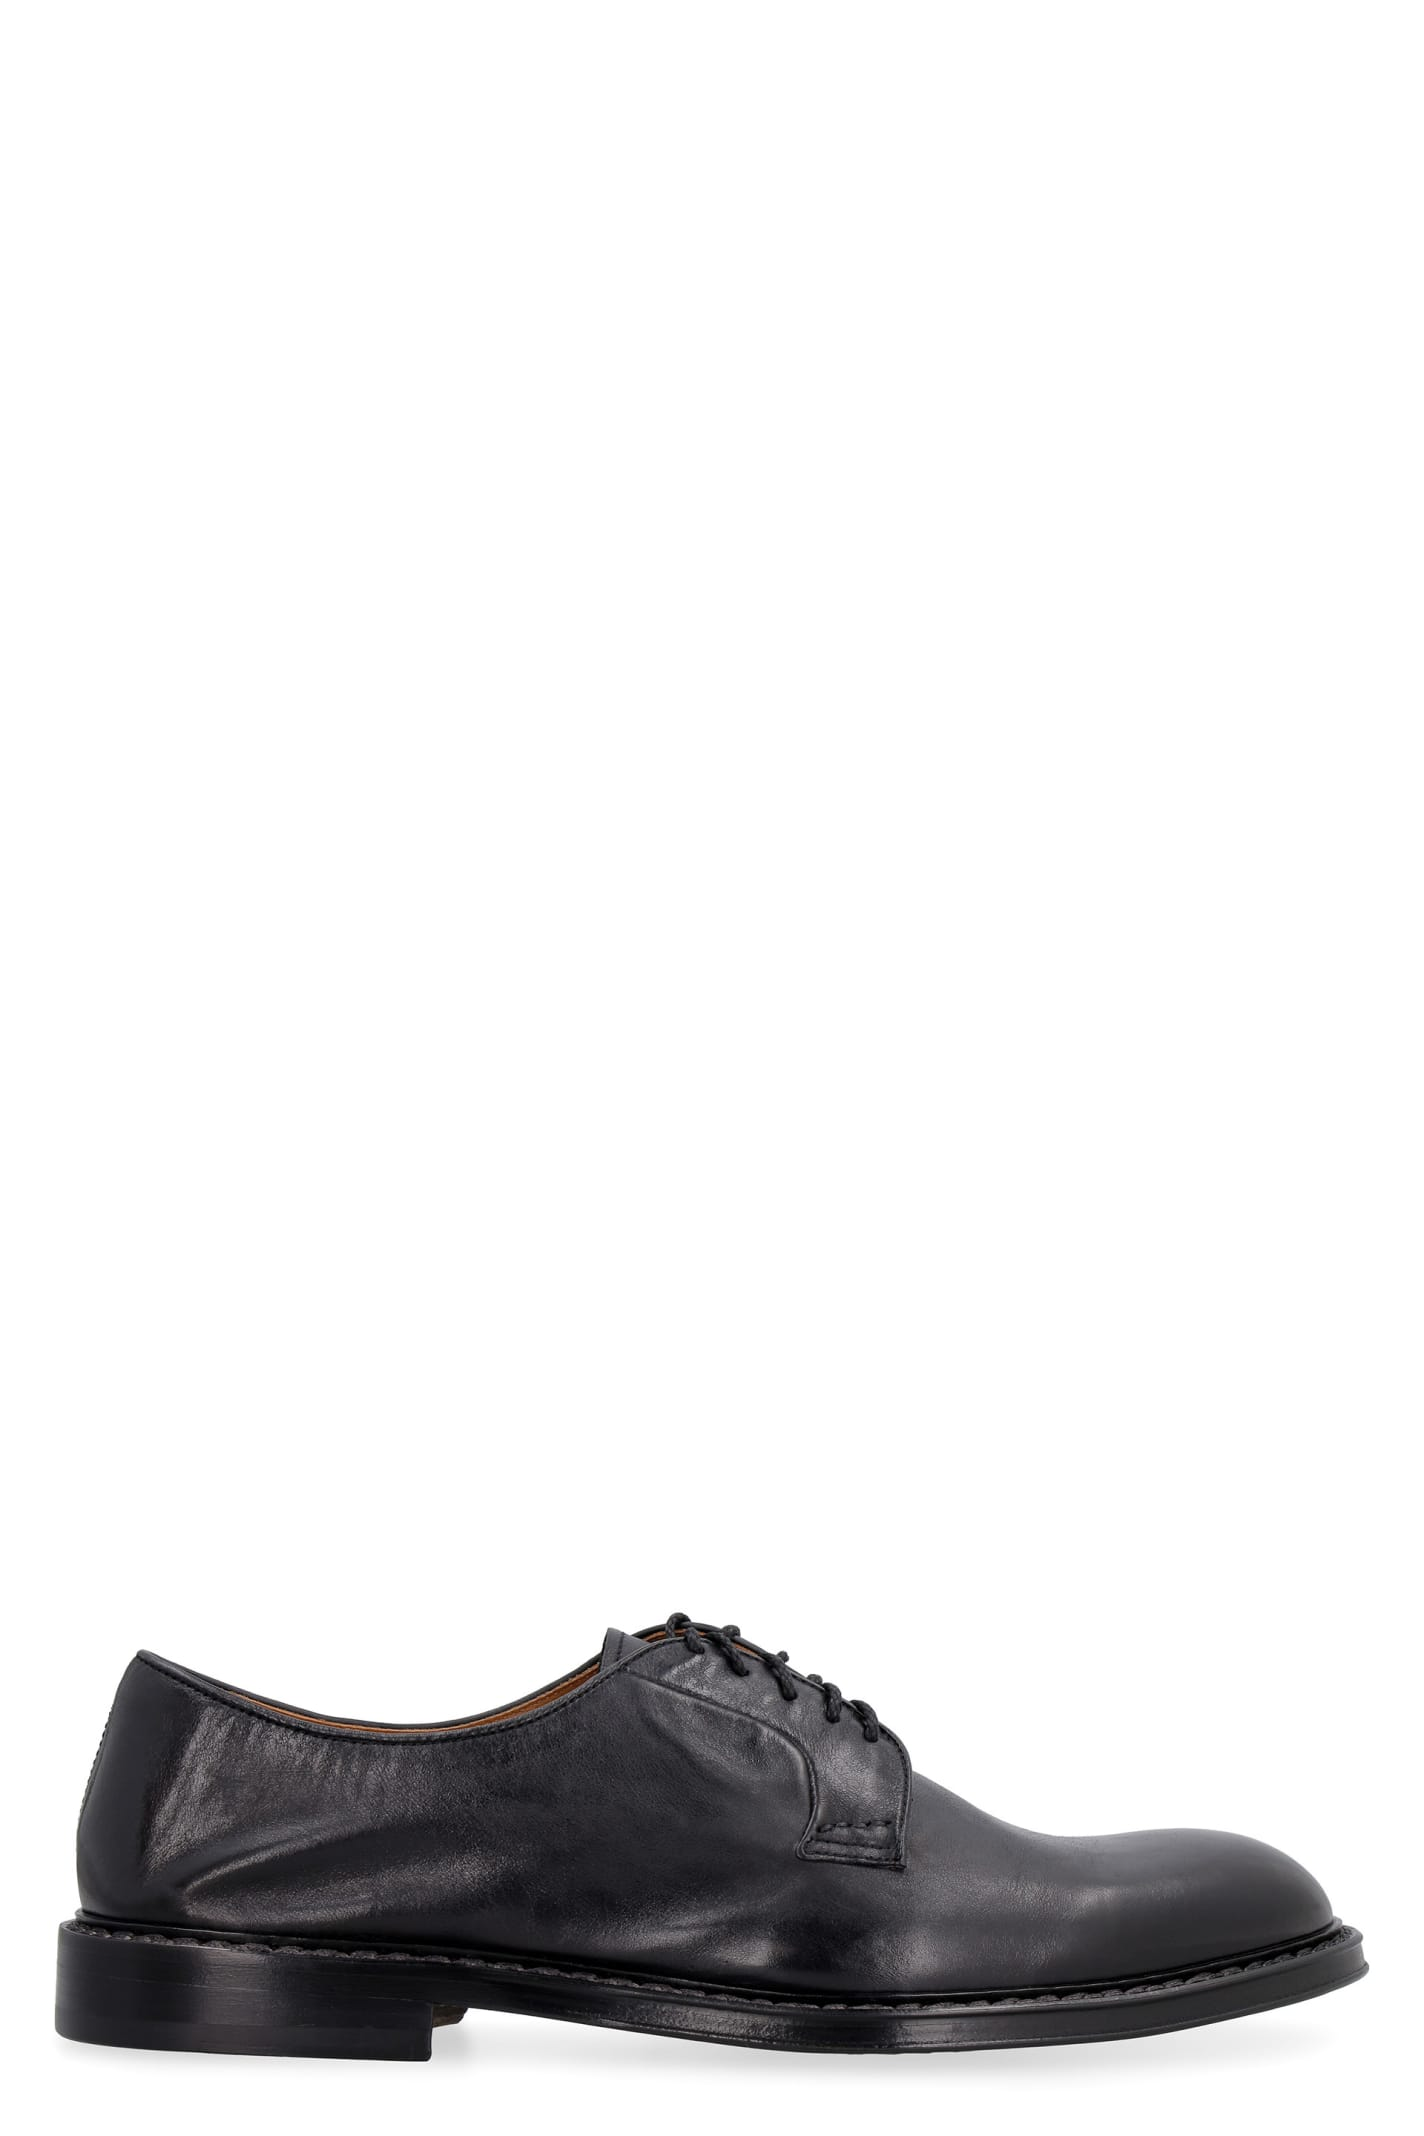 Doucal's LEATHER LACE-UP DERBY SHOES